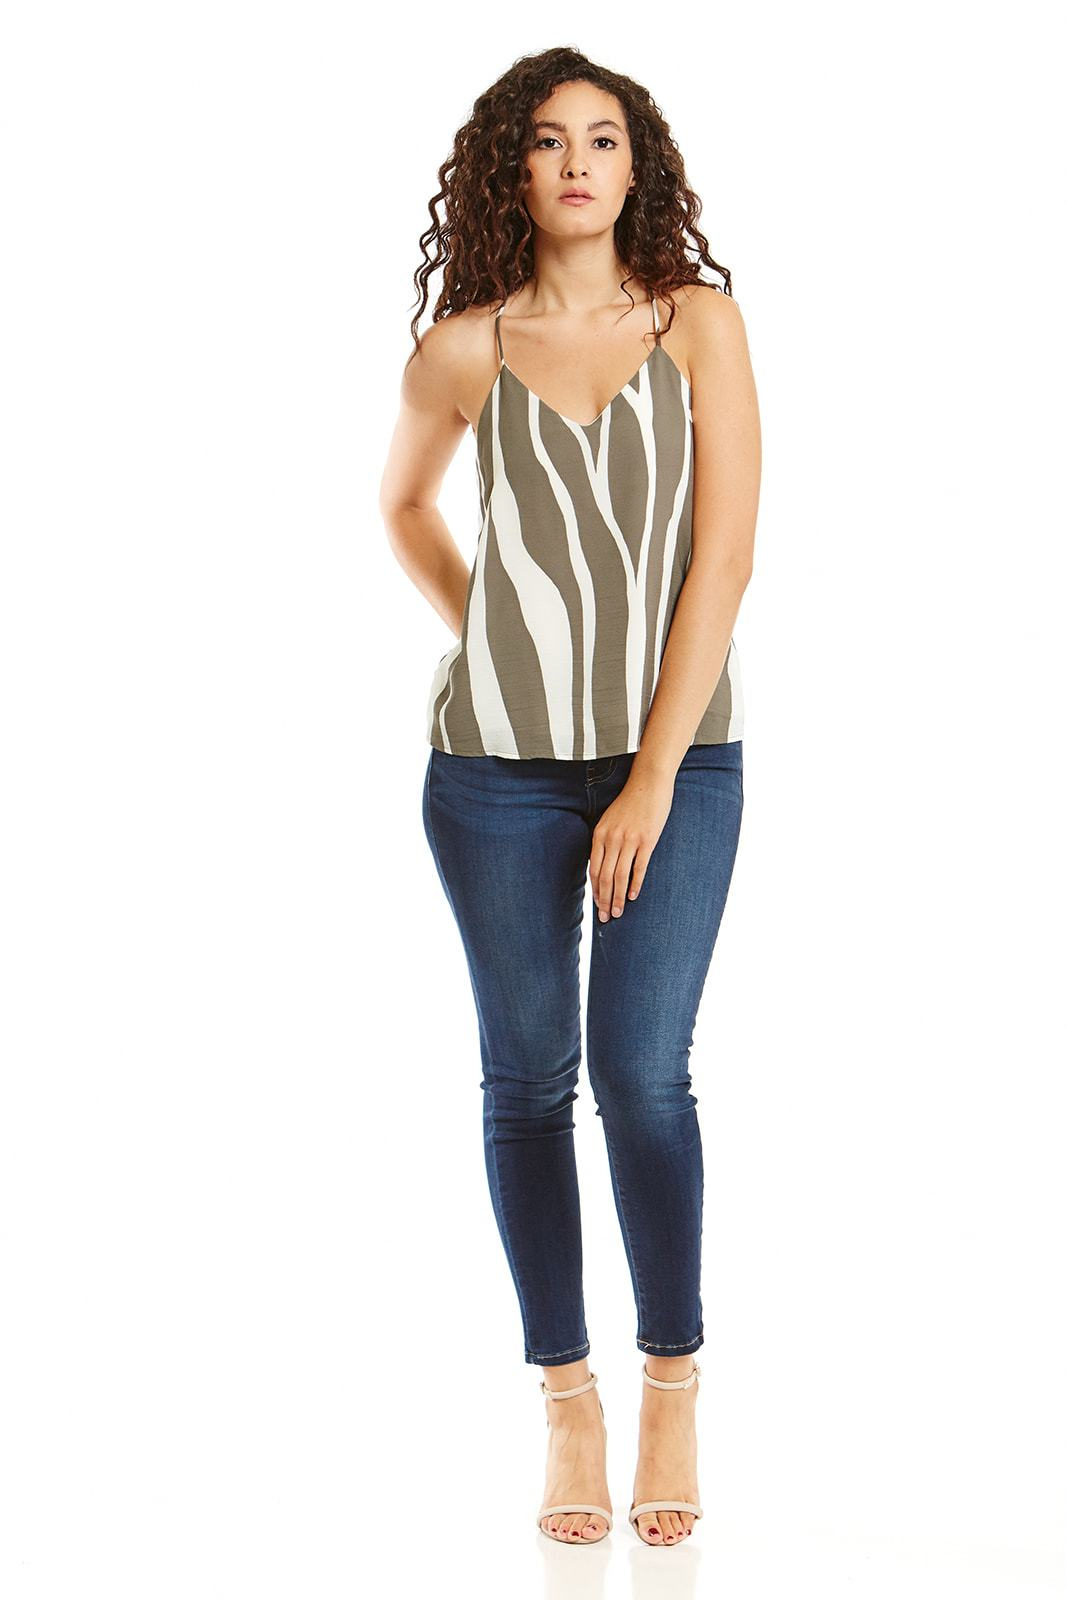 fab'rik - Isabell Stripe Tank ProductImage-5190418169914